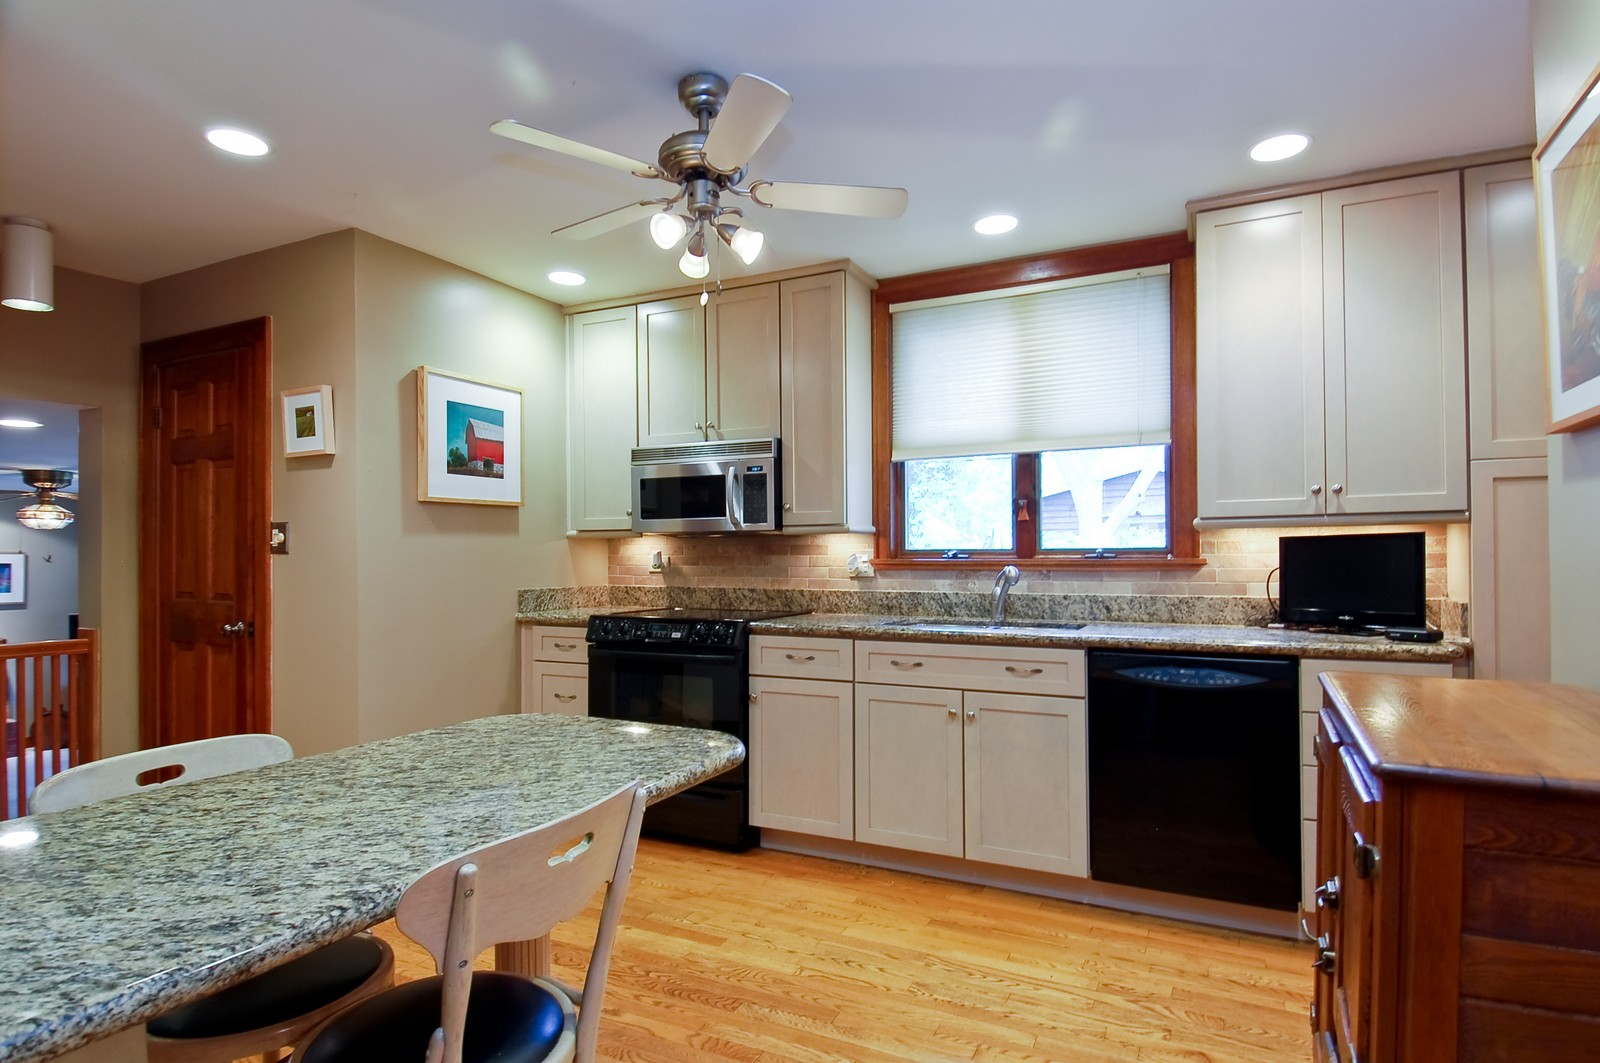 Real Estate Photography - 4325 Central Ave, Western Springs, IL, 60558 - Kitchen